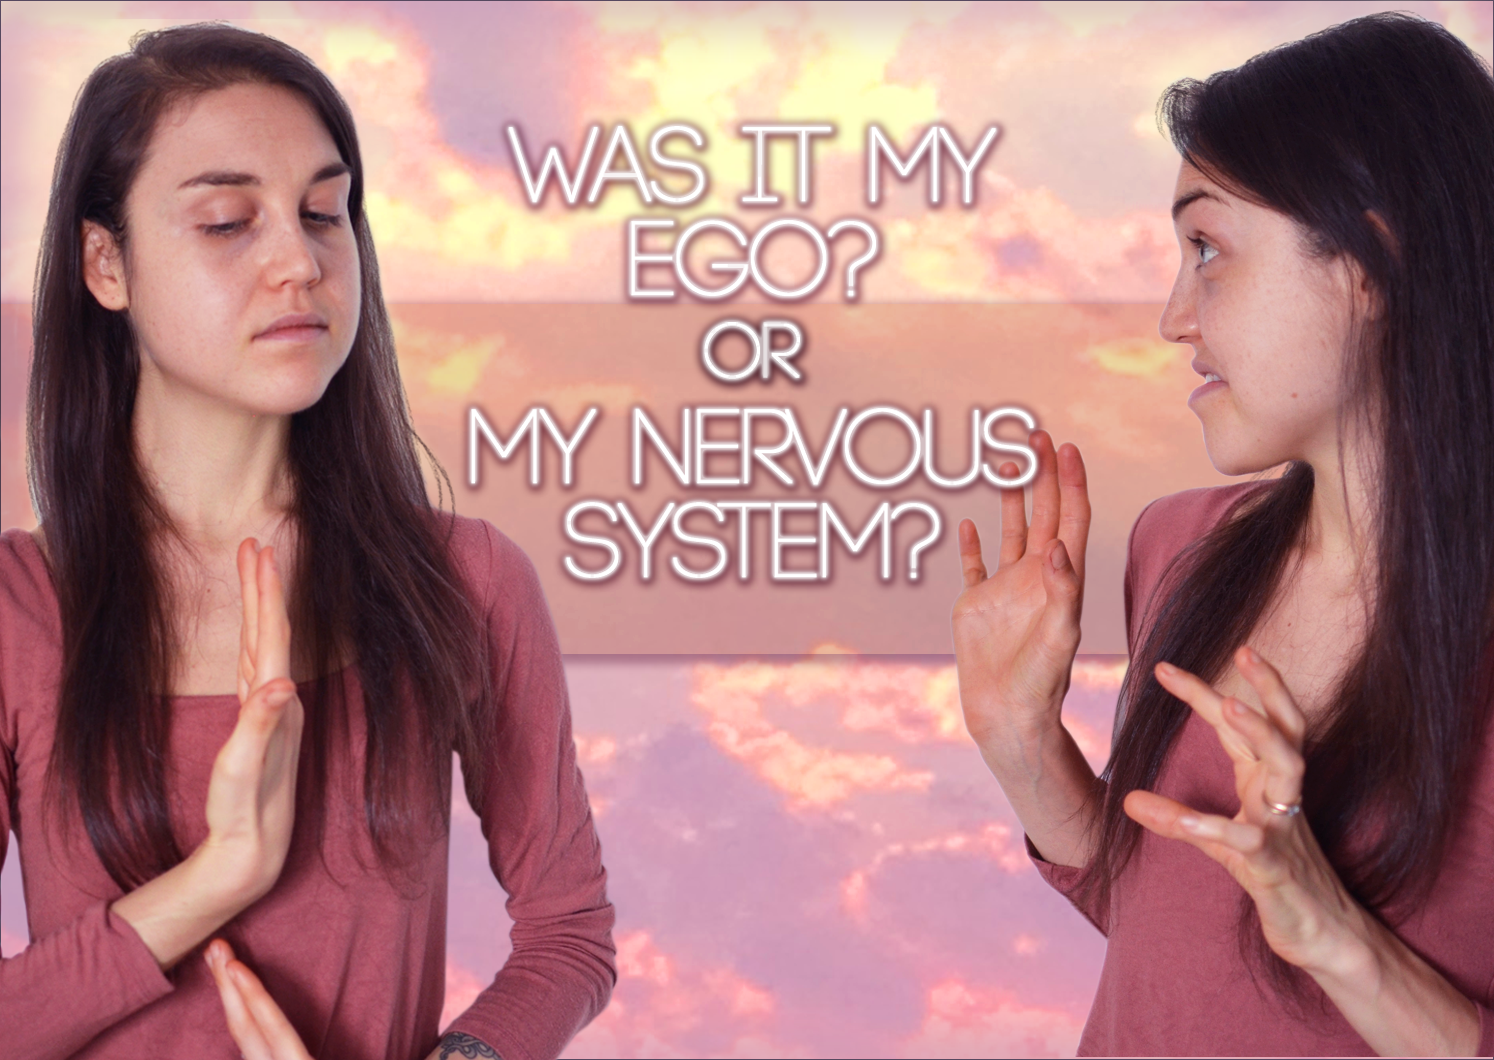 Ego? Or Nervous System? Why Life Feels So Scary/Stressful